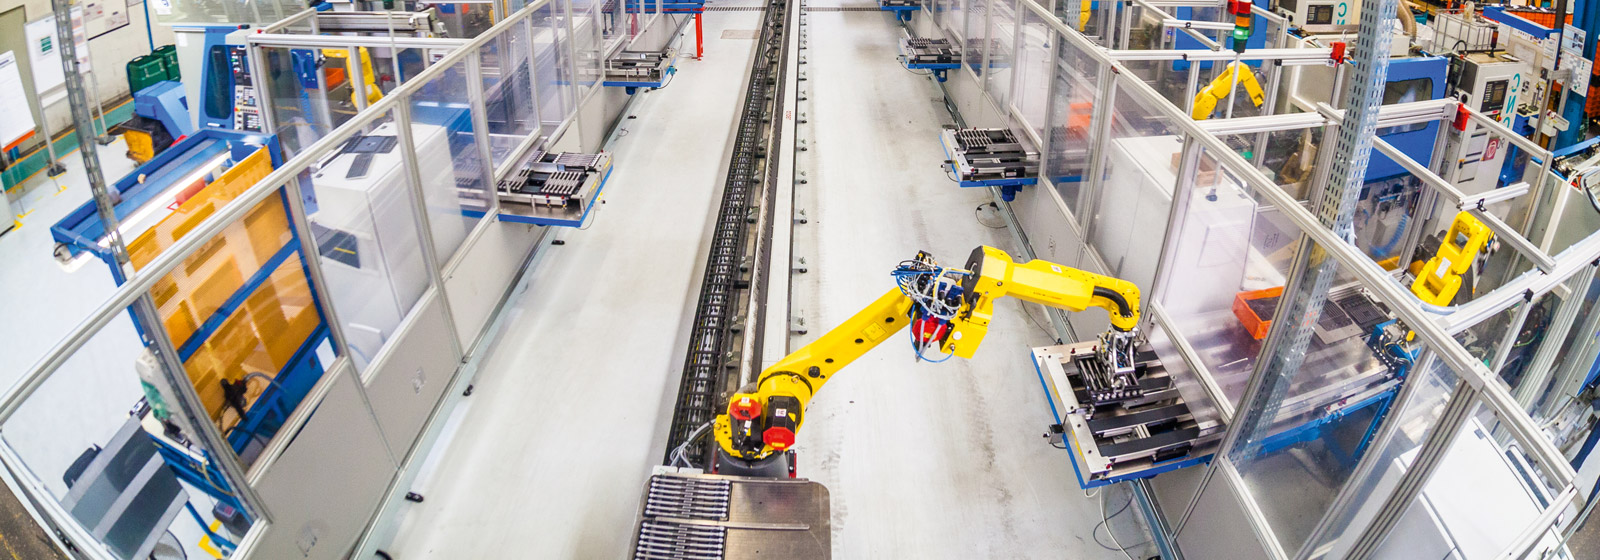 Robot on rail handling materials